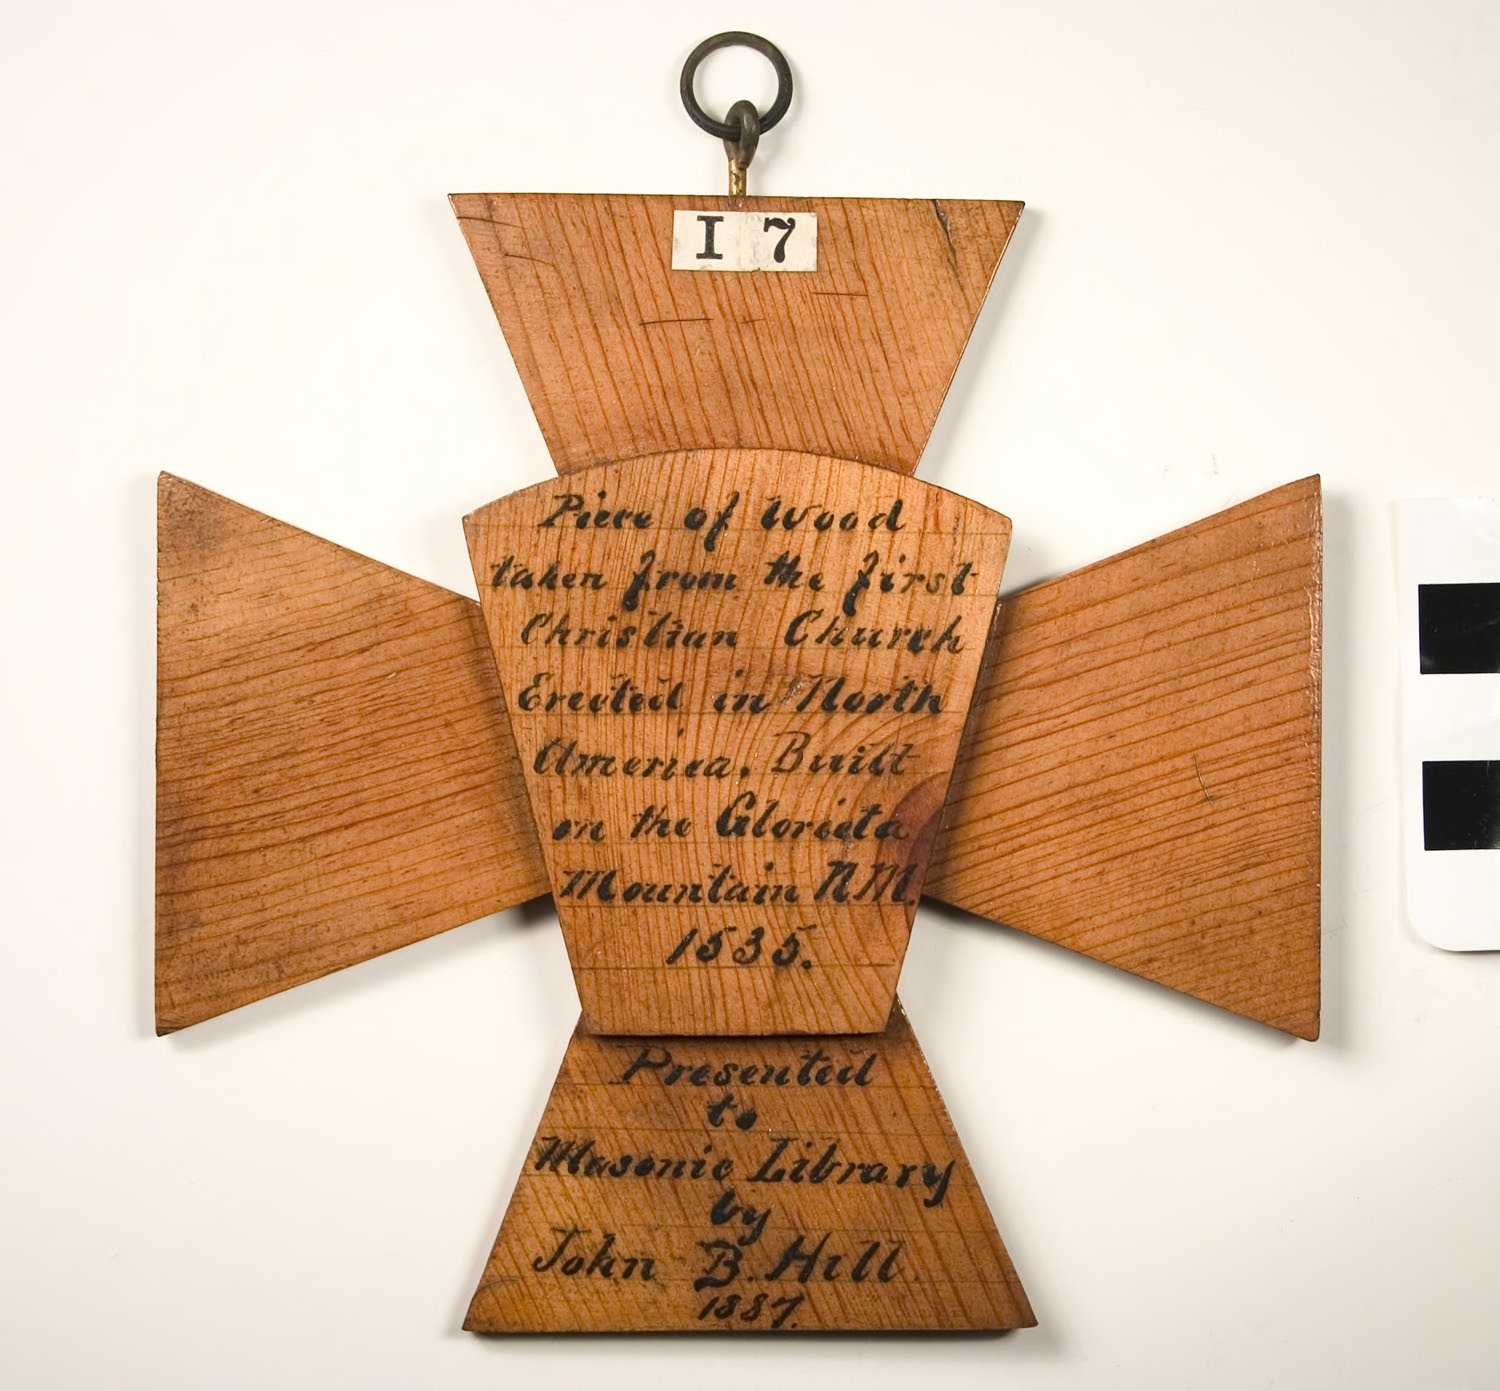 H52-26; Plaque, Templar Cross and Royal Arch Keystone, wood relics